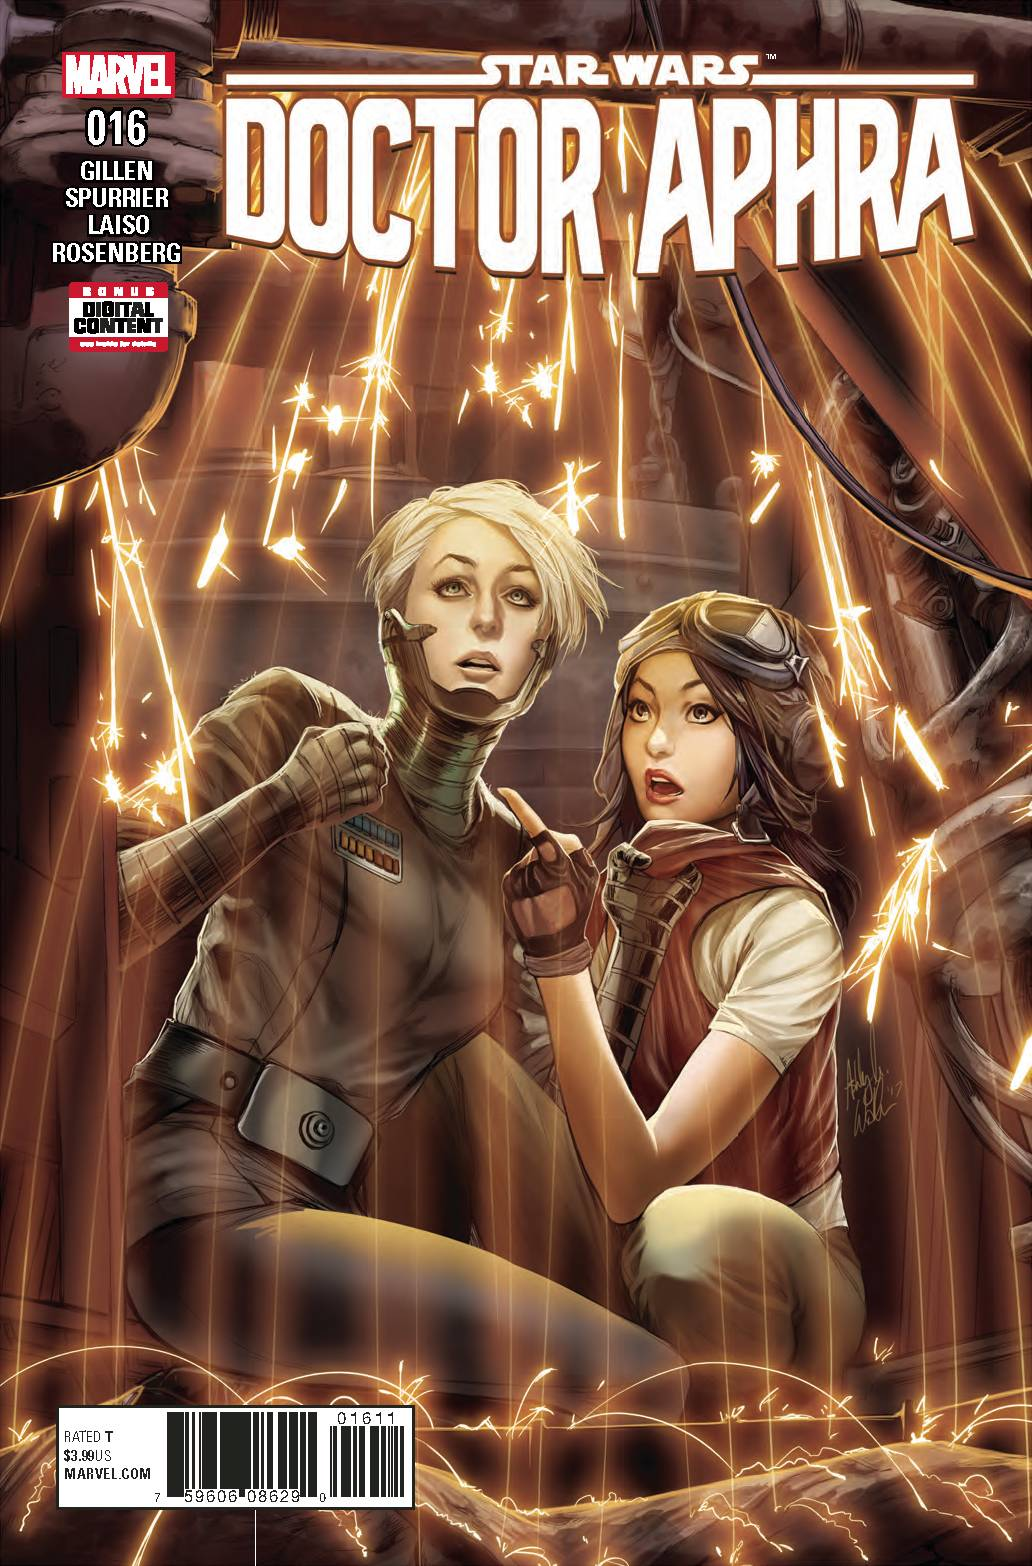 Star Wars Doctor Aphra #16